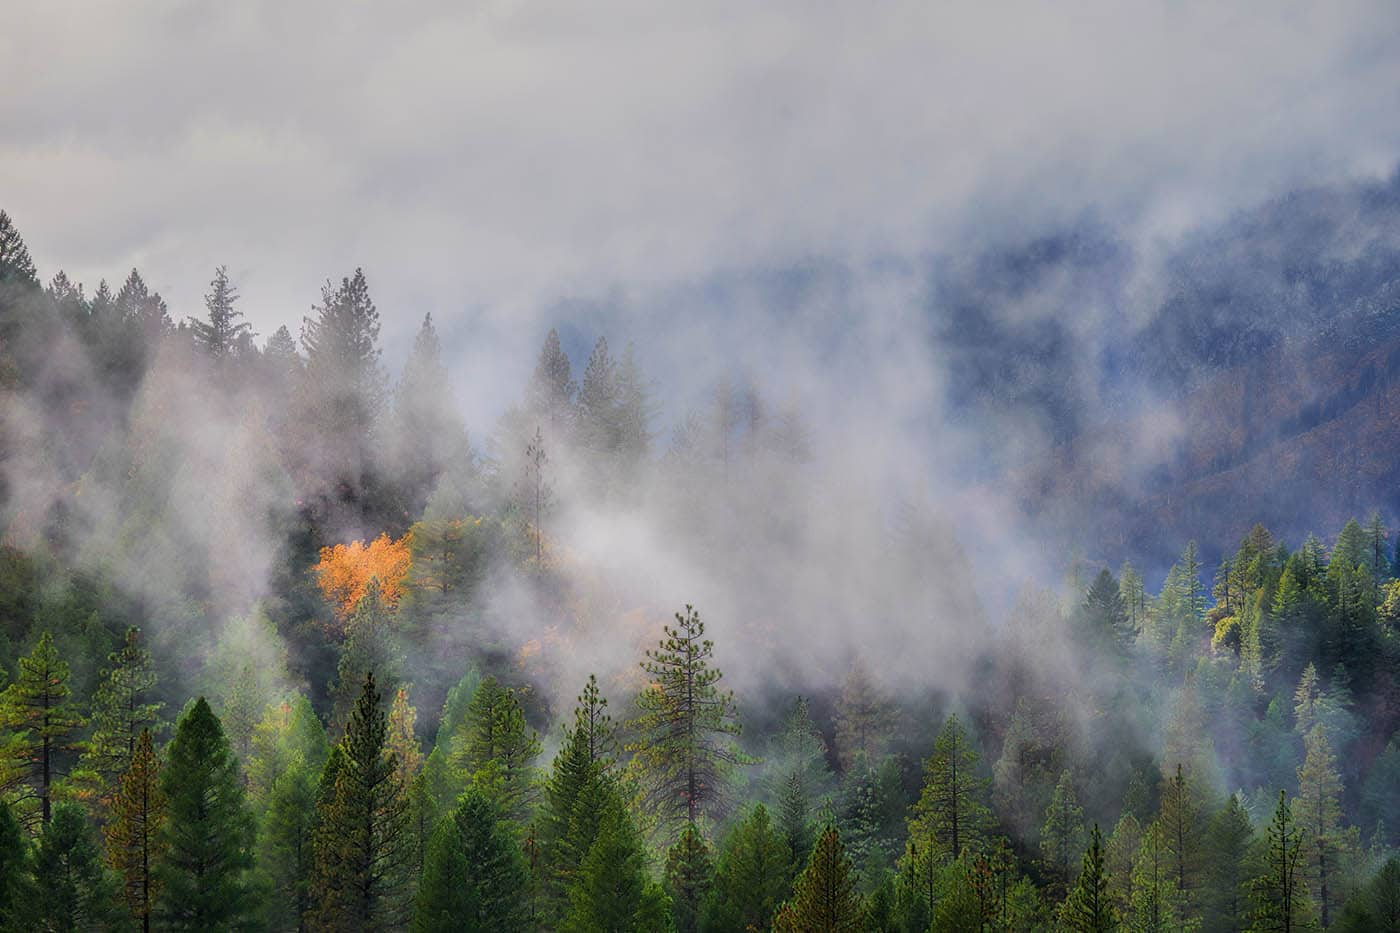 One tree with yellow leaves surrounded by evergreen trees in the Sierra Nevada Mountains after storm.